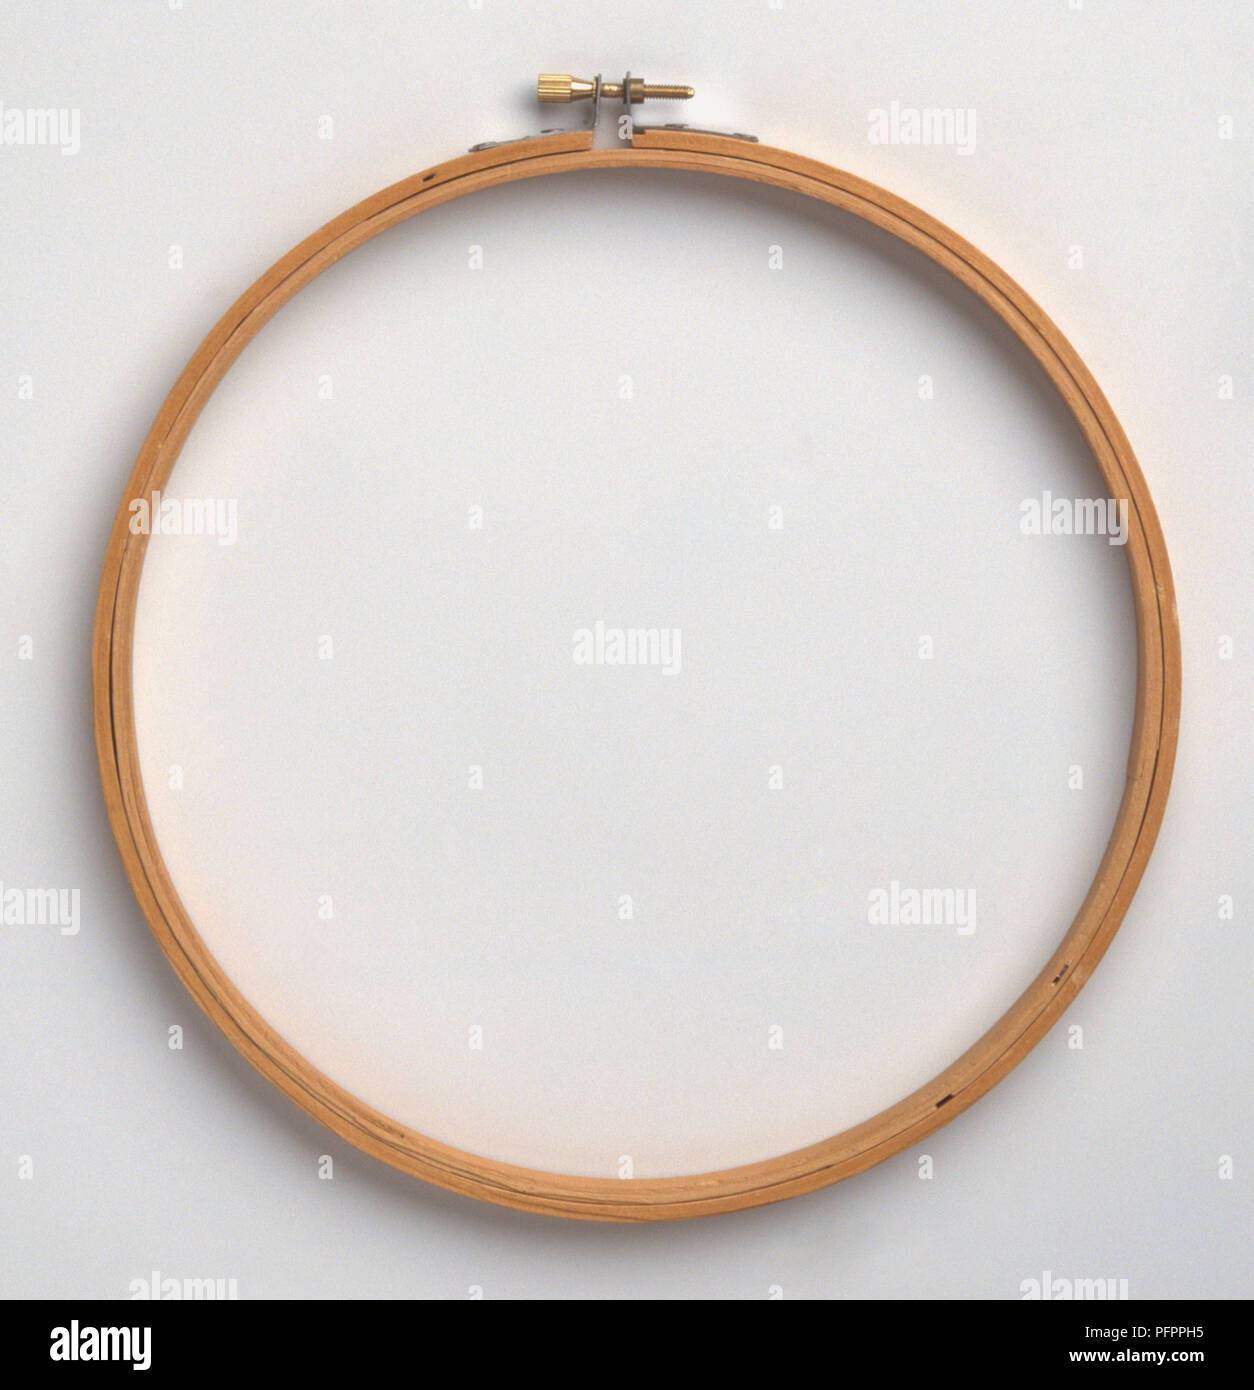 Embroidery hoop or tambour frame Stock Photo: 216244929 - Alamy